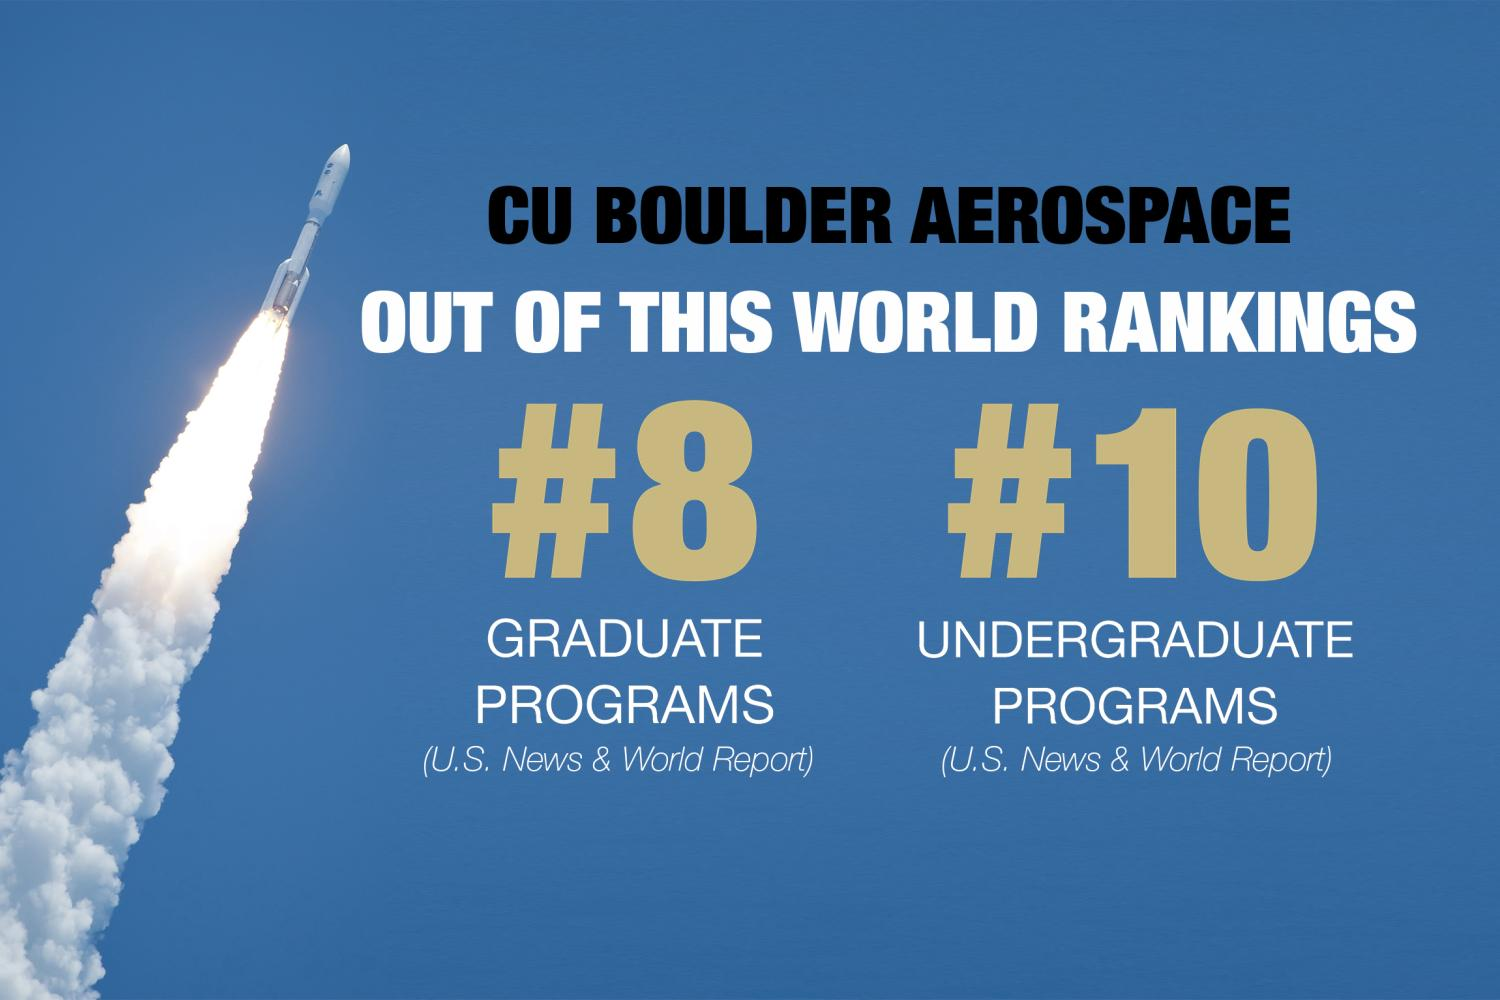 Aerospace Ranks #8 in Graduate Programs According to US News & World Report